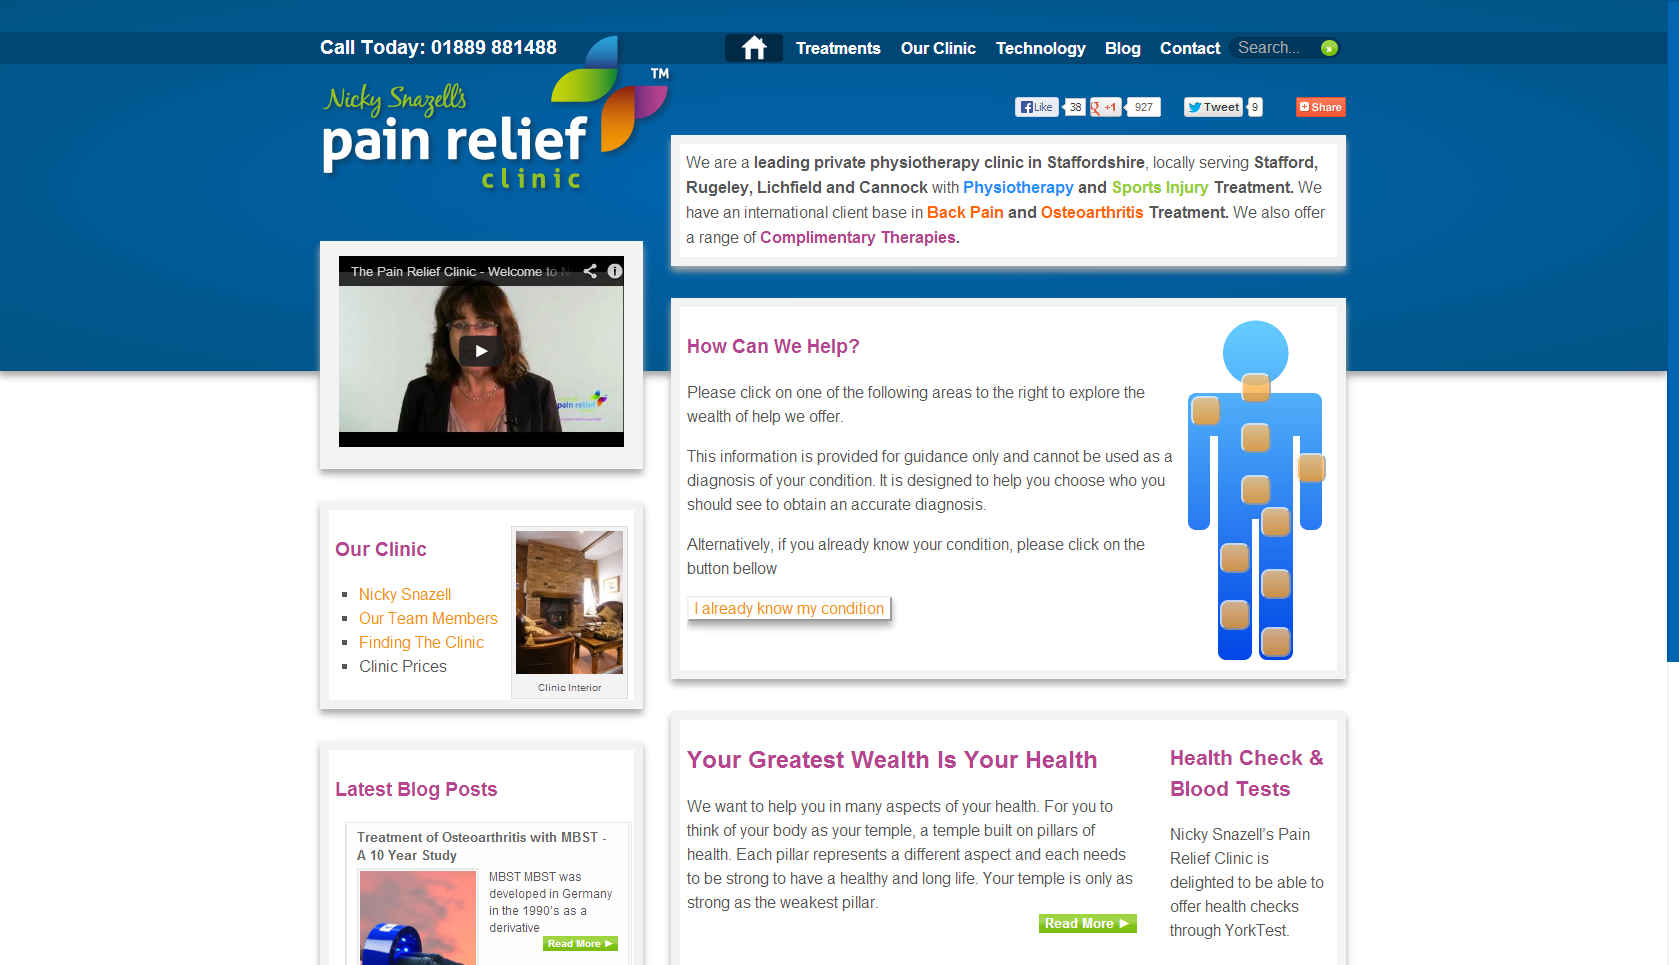 Nicky Snazell's Pain Relief Clinic Website